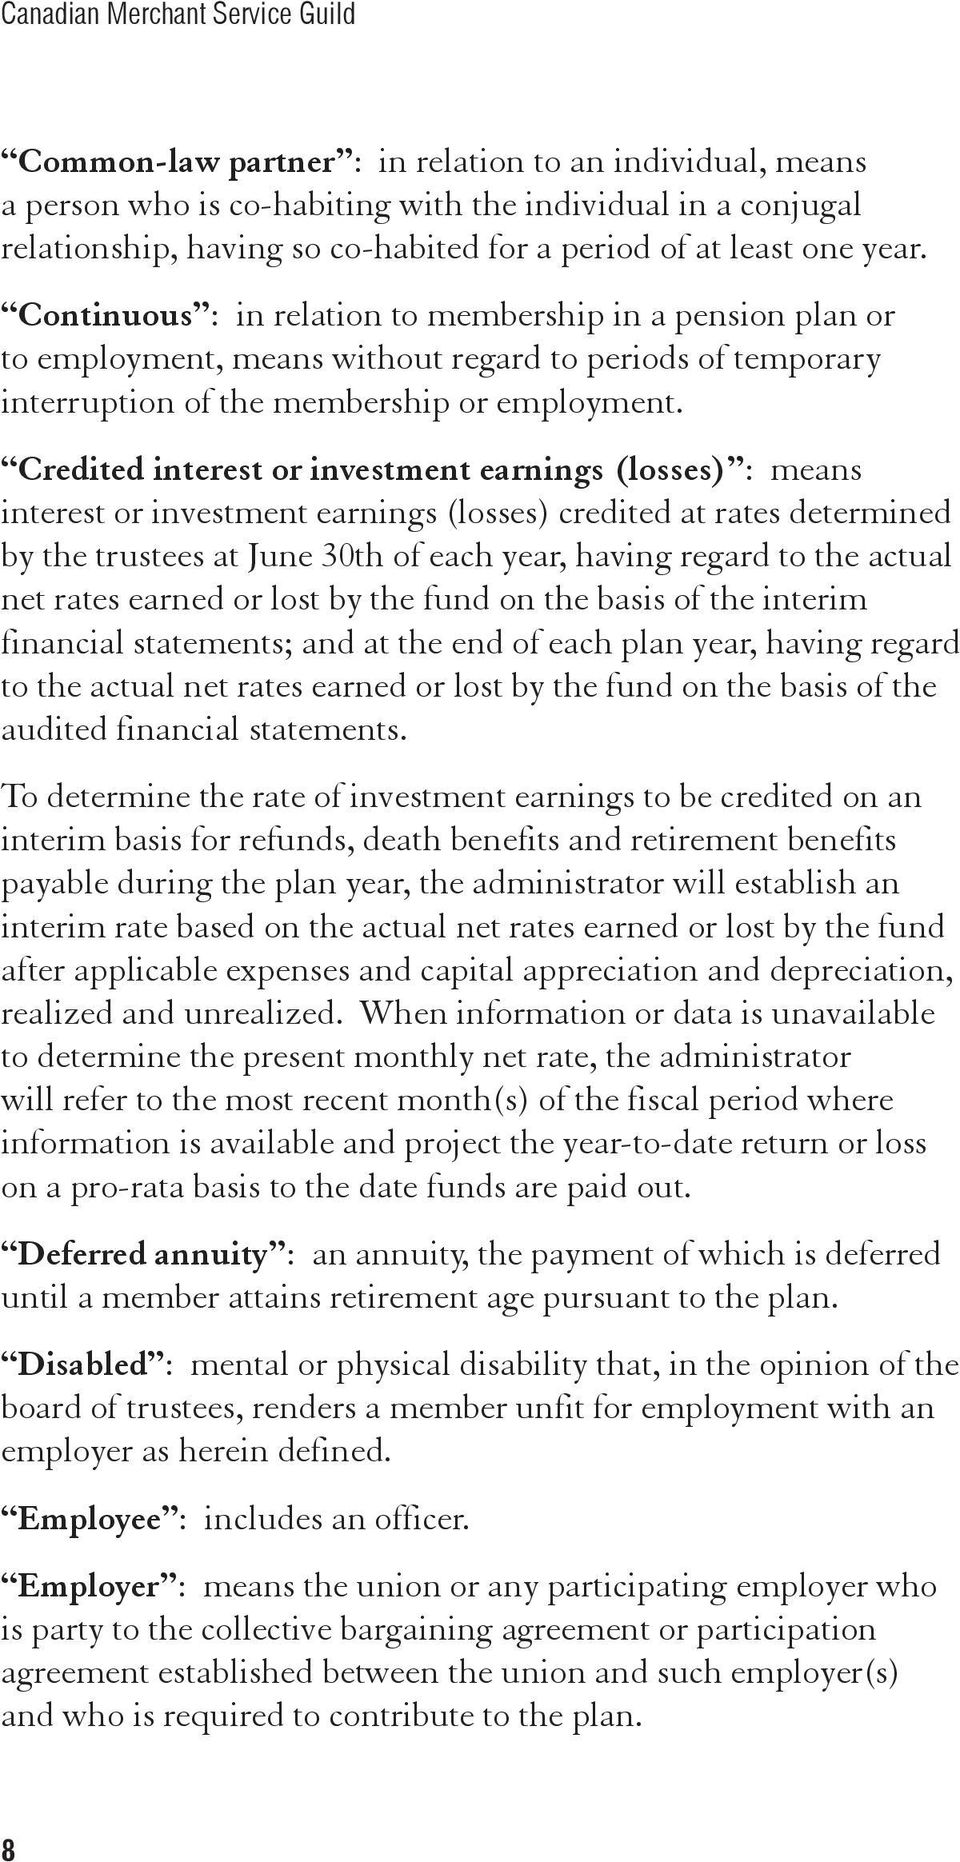 Credited interest or investment earnings (losses) : means interest or investment earnings (losses) credited at rates determined by the trustees at June 30th of each year, having regard to the actual